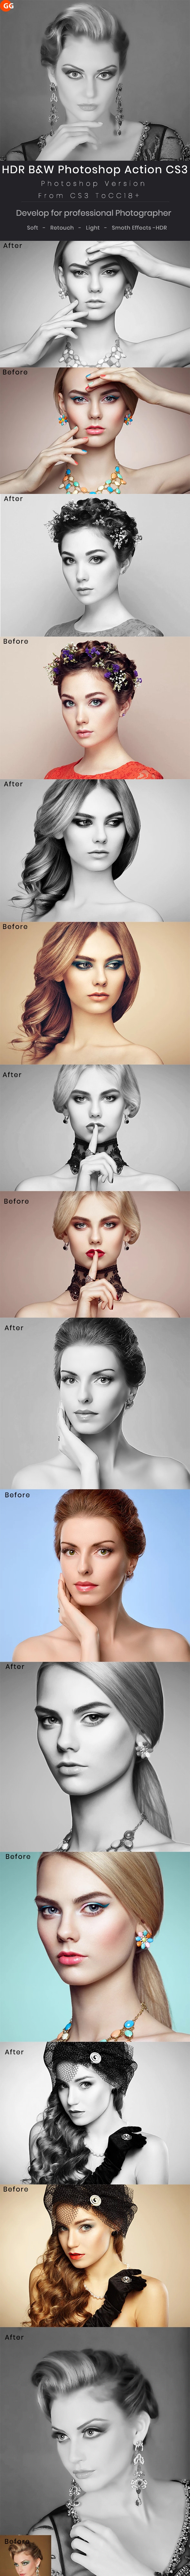 HDR B&W Photoshop Action - Photo Effects Actions